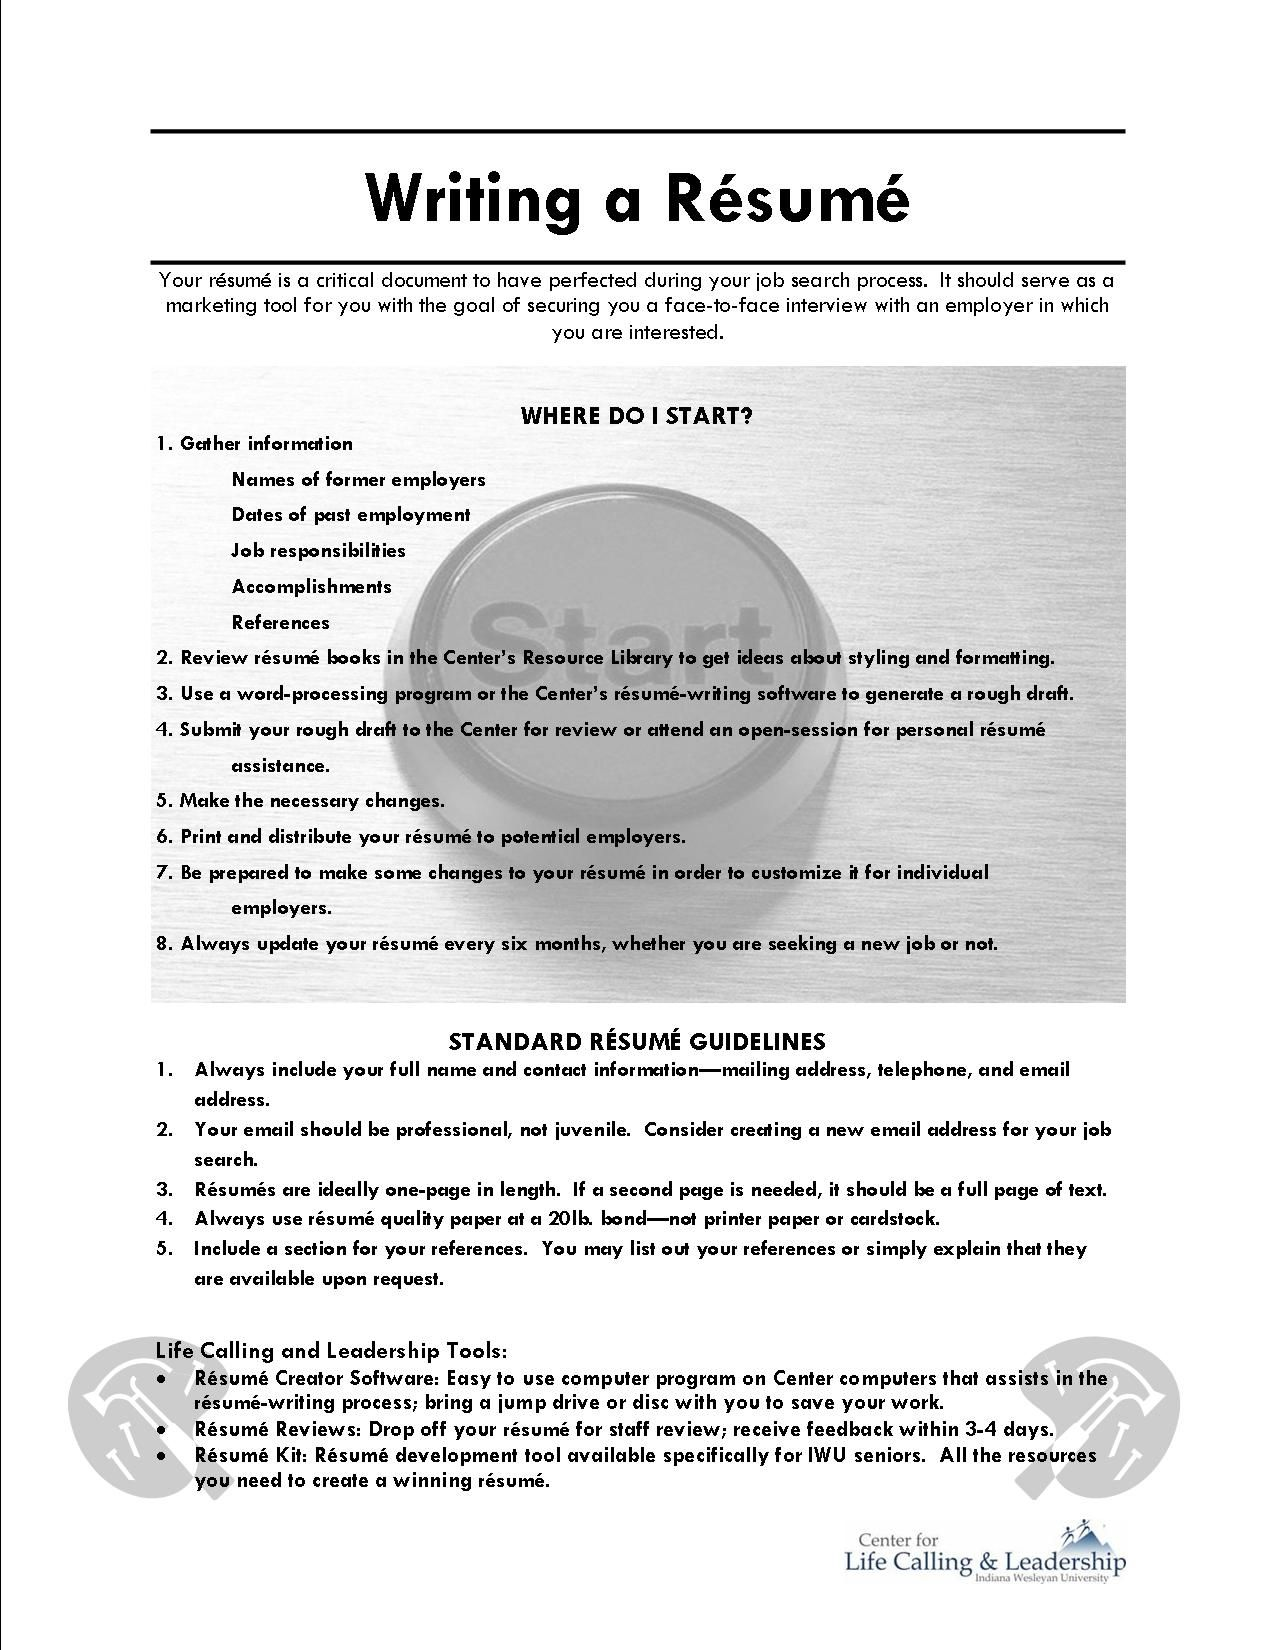 writing a resume online resourceswriting a resume cover letter examples - Resume Writing